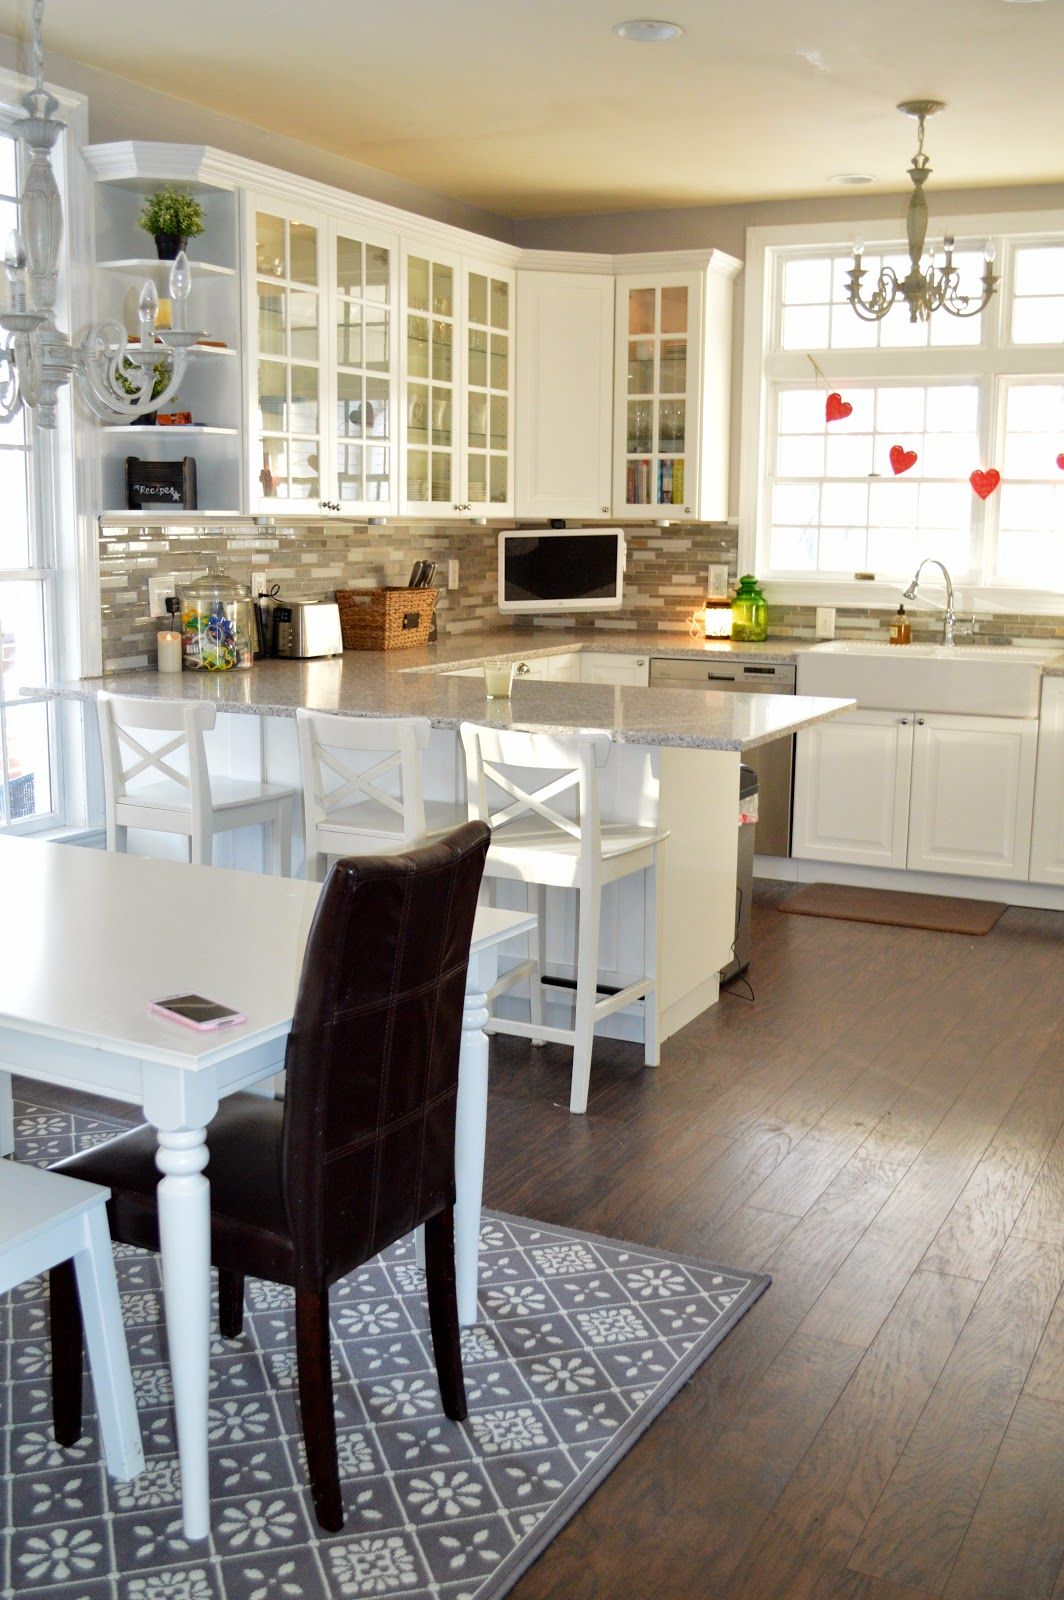 Cuisine Pour Studio Ikea Farmhouse Kitchen Makeover Using Ikea Cabinets Home Home Decor